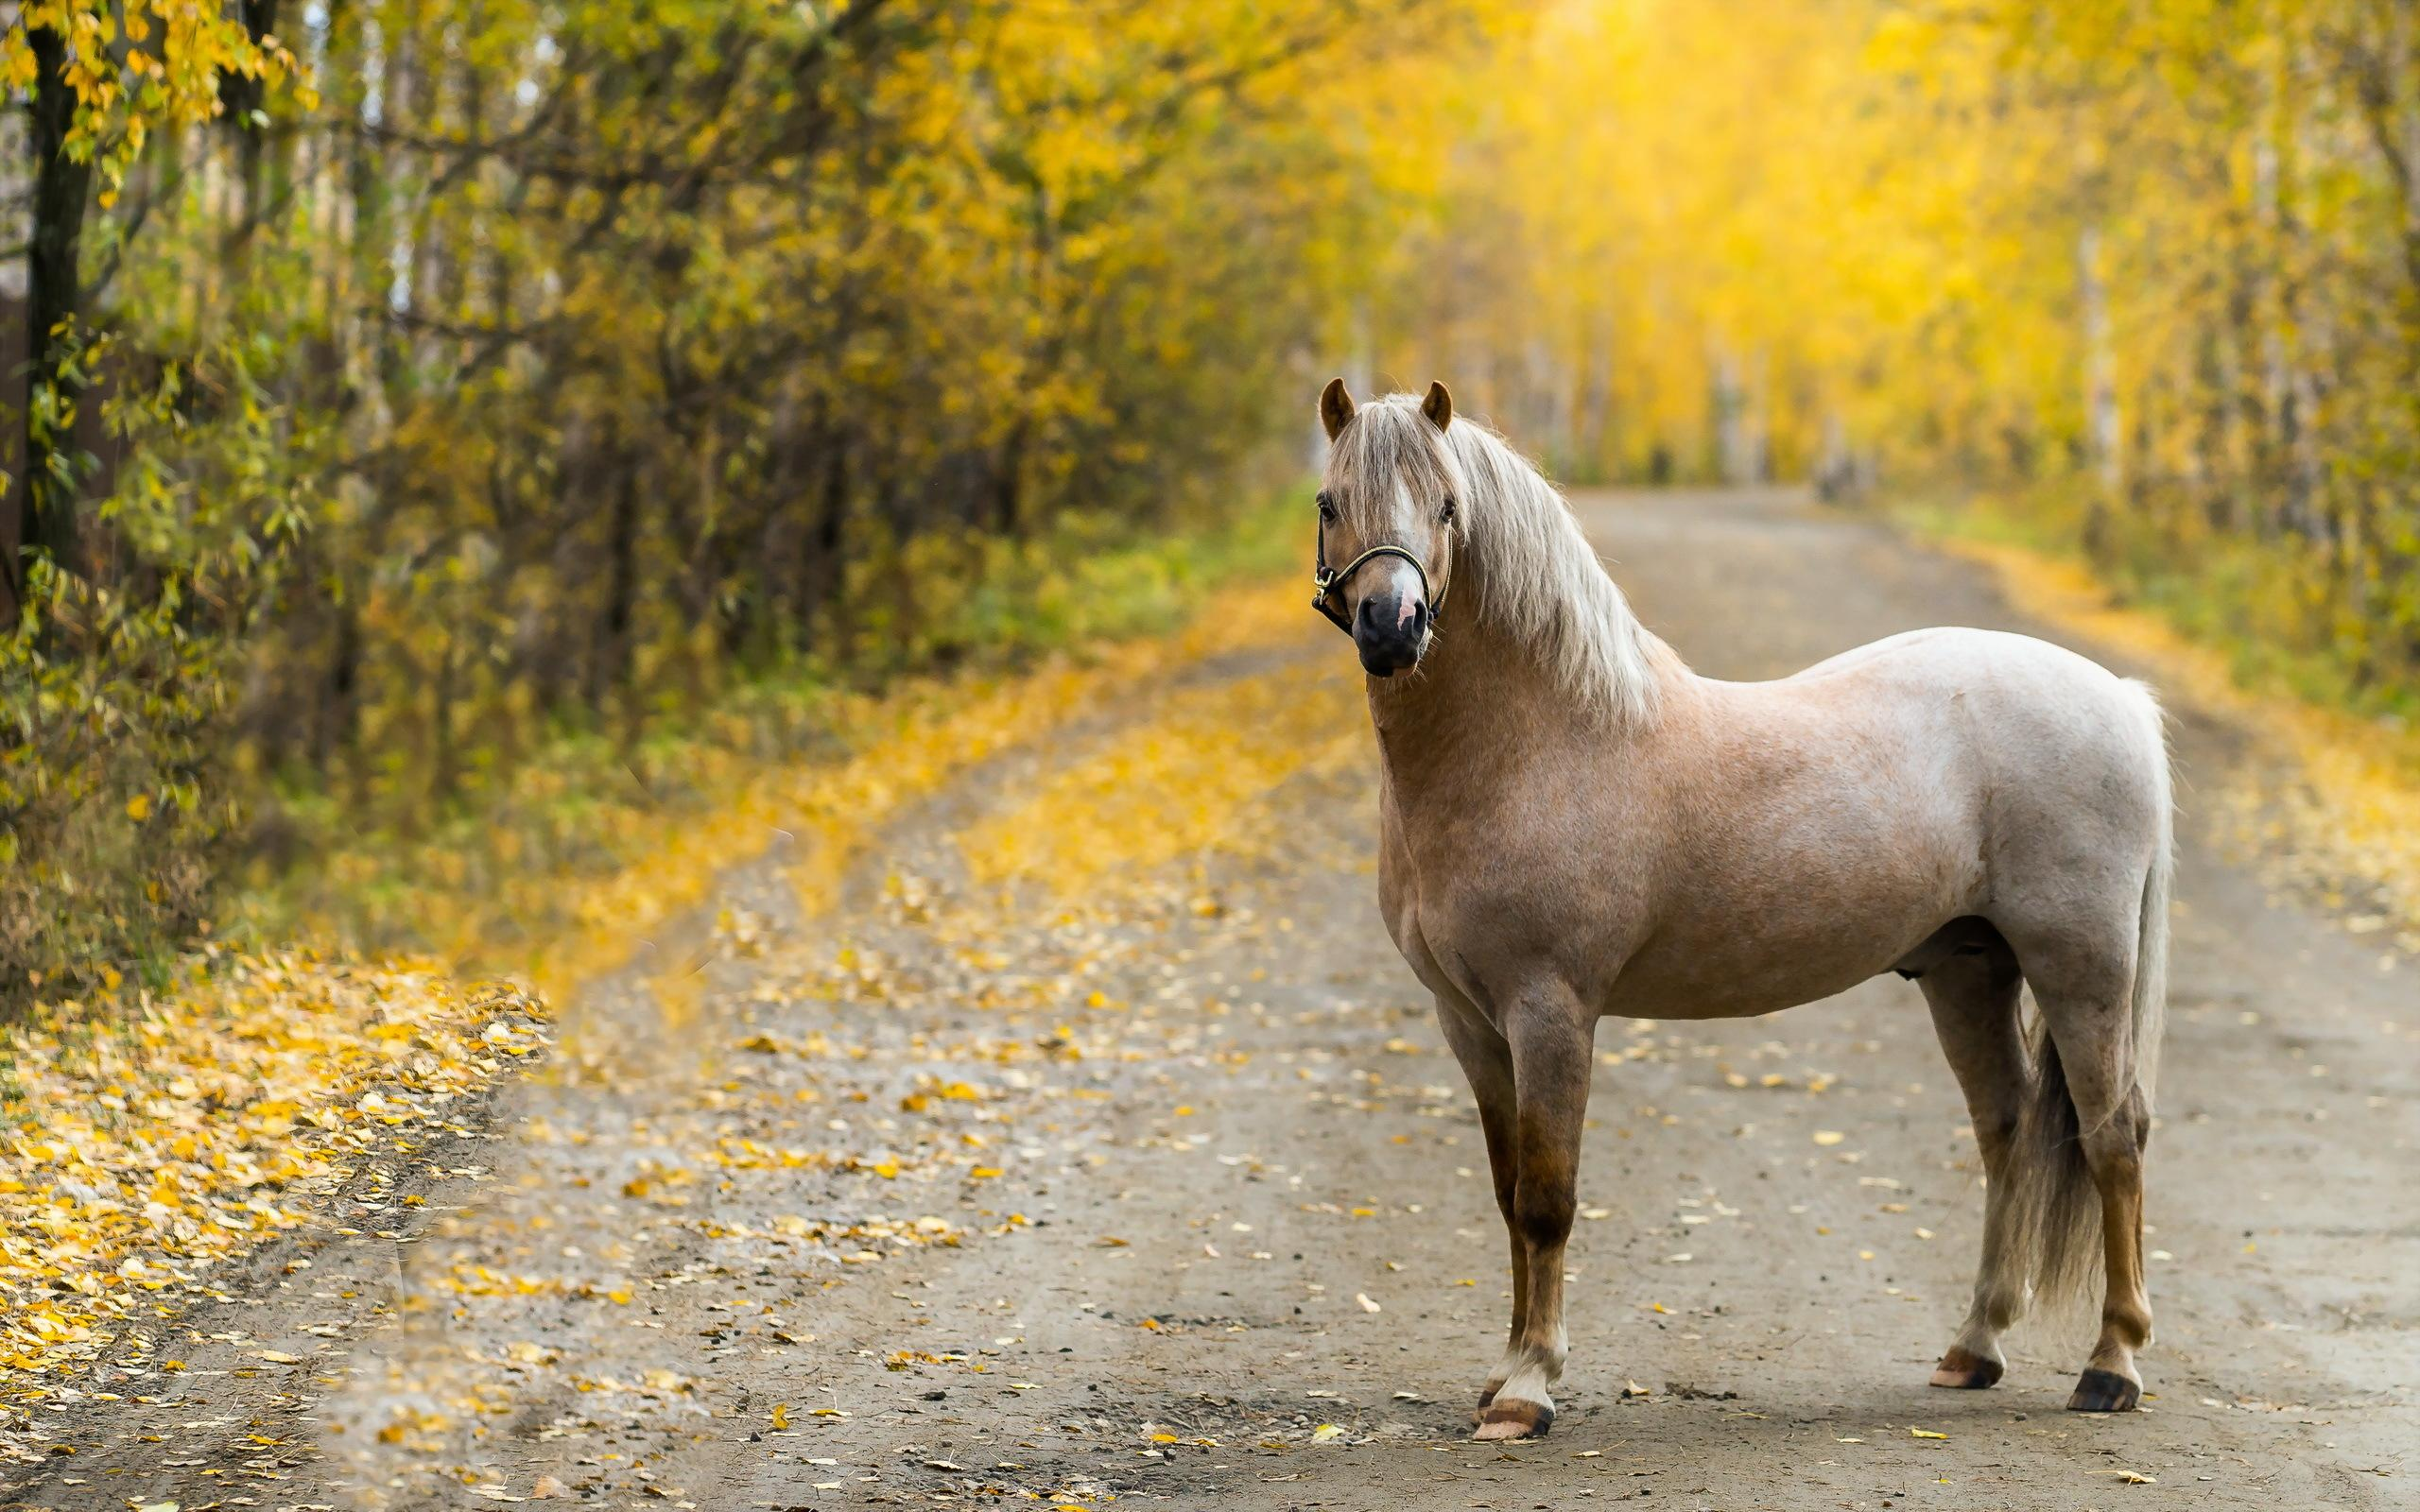 spring wild horse wallpaper - photo #9